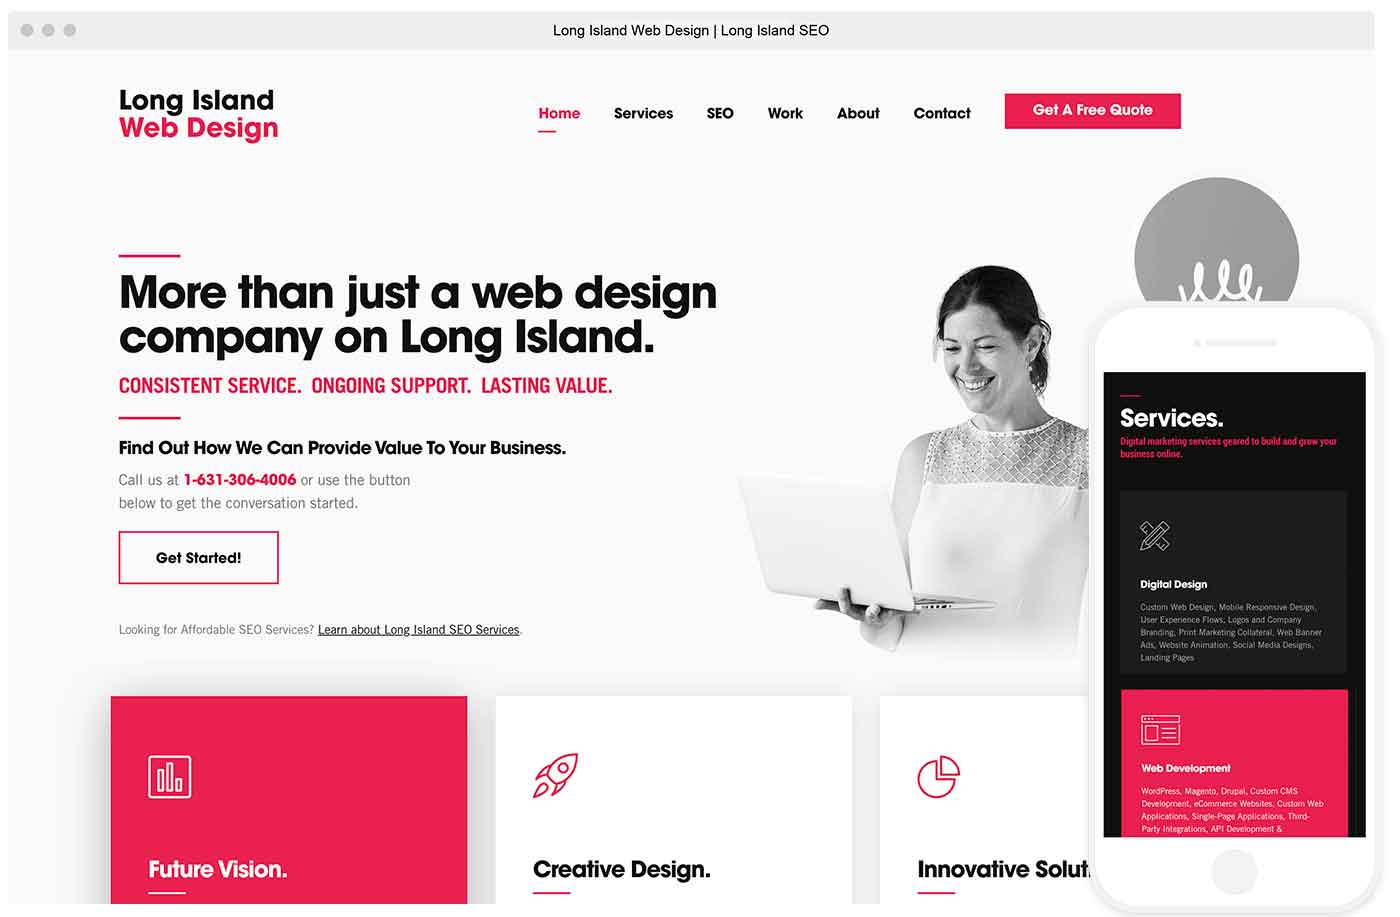 website of long island web design